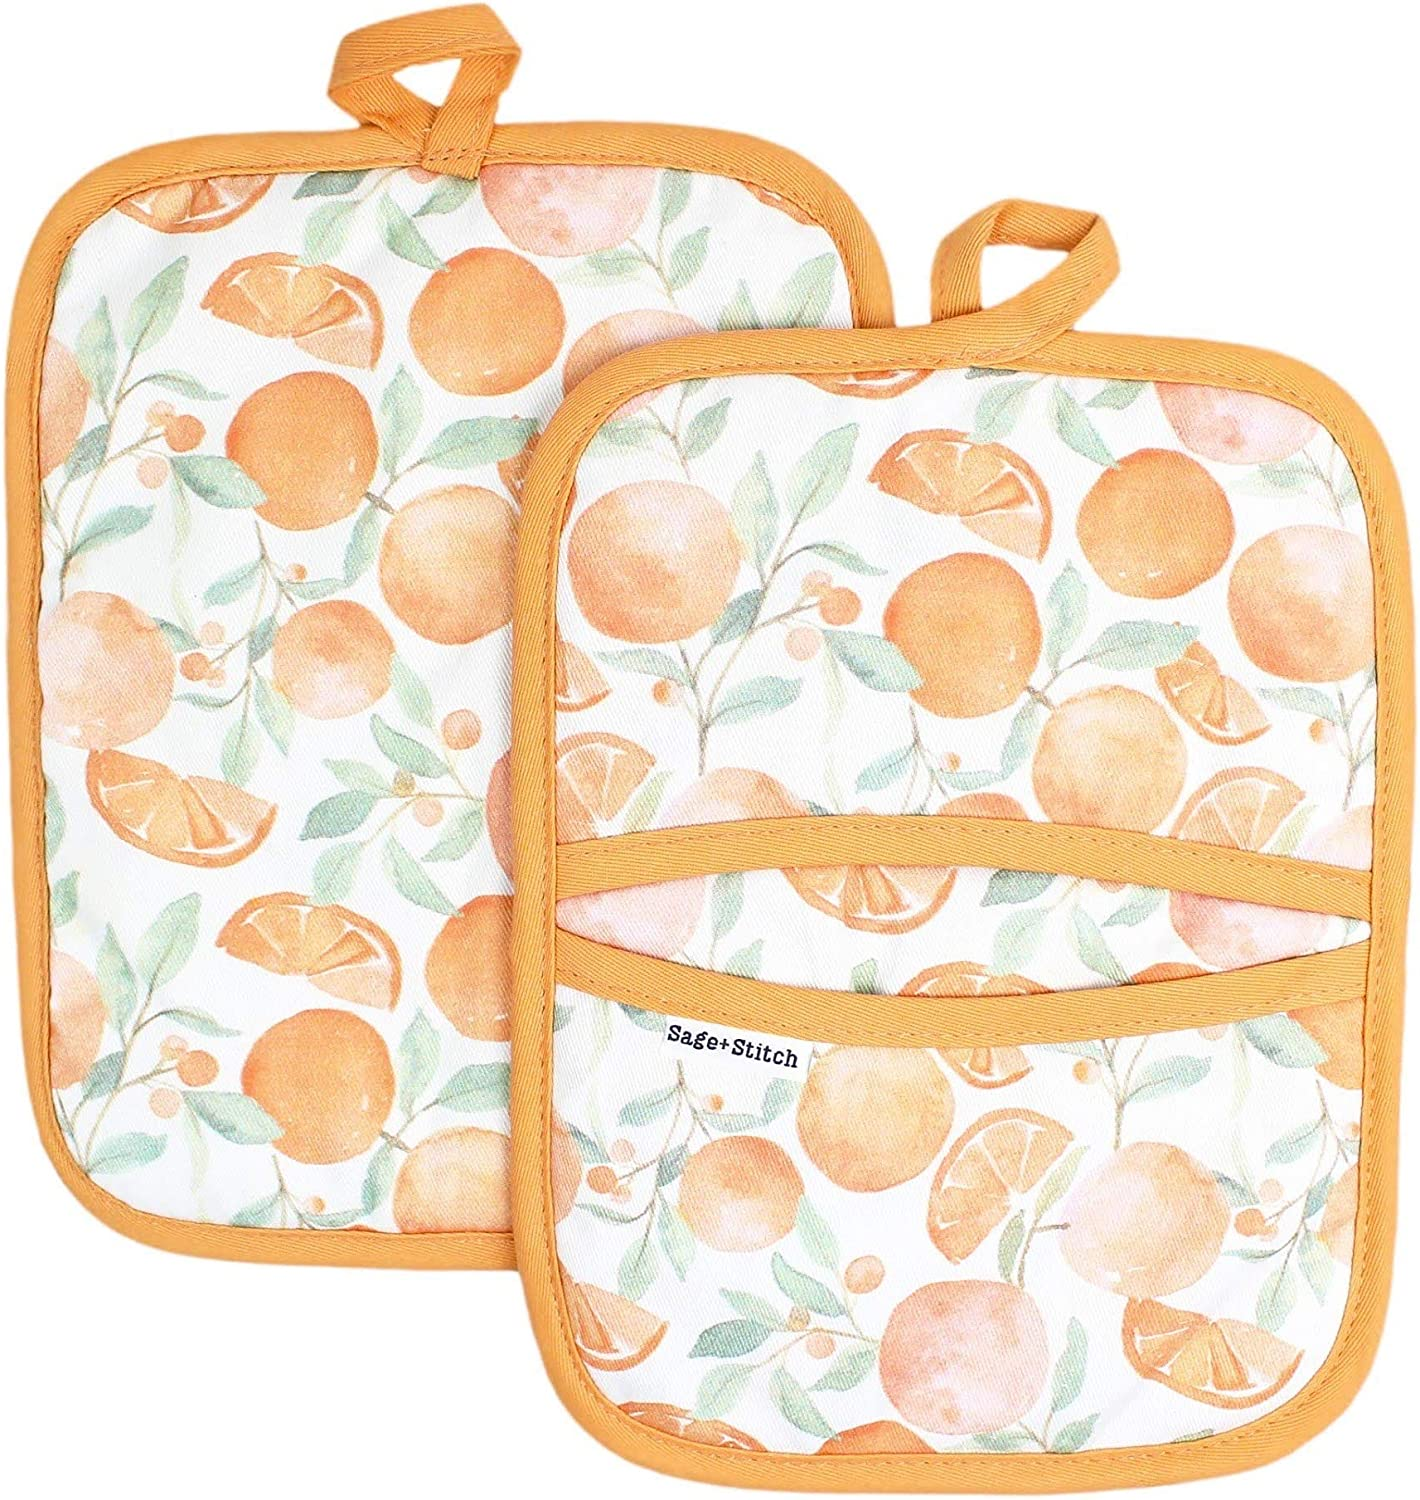 Sage and Stitch Kitchen Pot Holders for Women 7'' x 9'' with Hand Pockets and Hanging Loop, Dual Function Oven Mitt Trivet Potholder Hot Pad 100% Cotton, Heat Resistant Set of 2 - Oranges